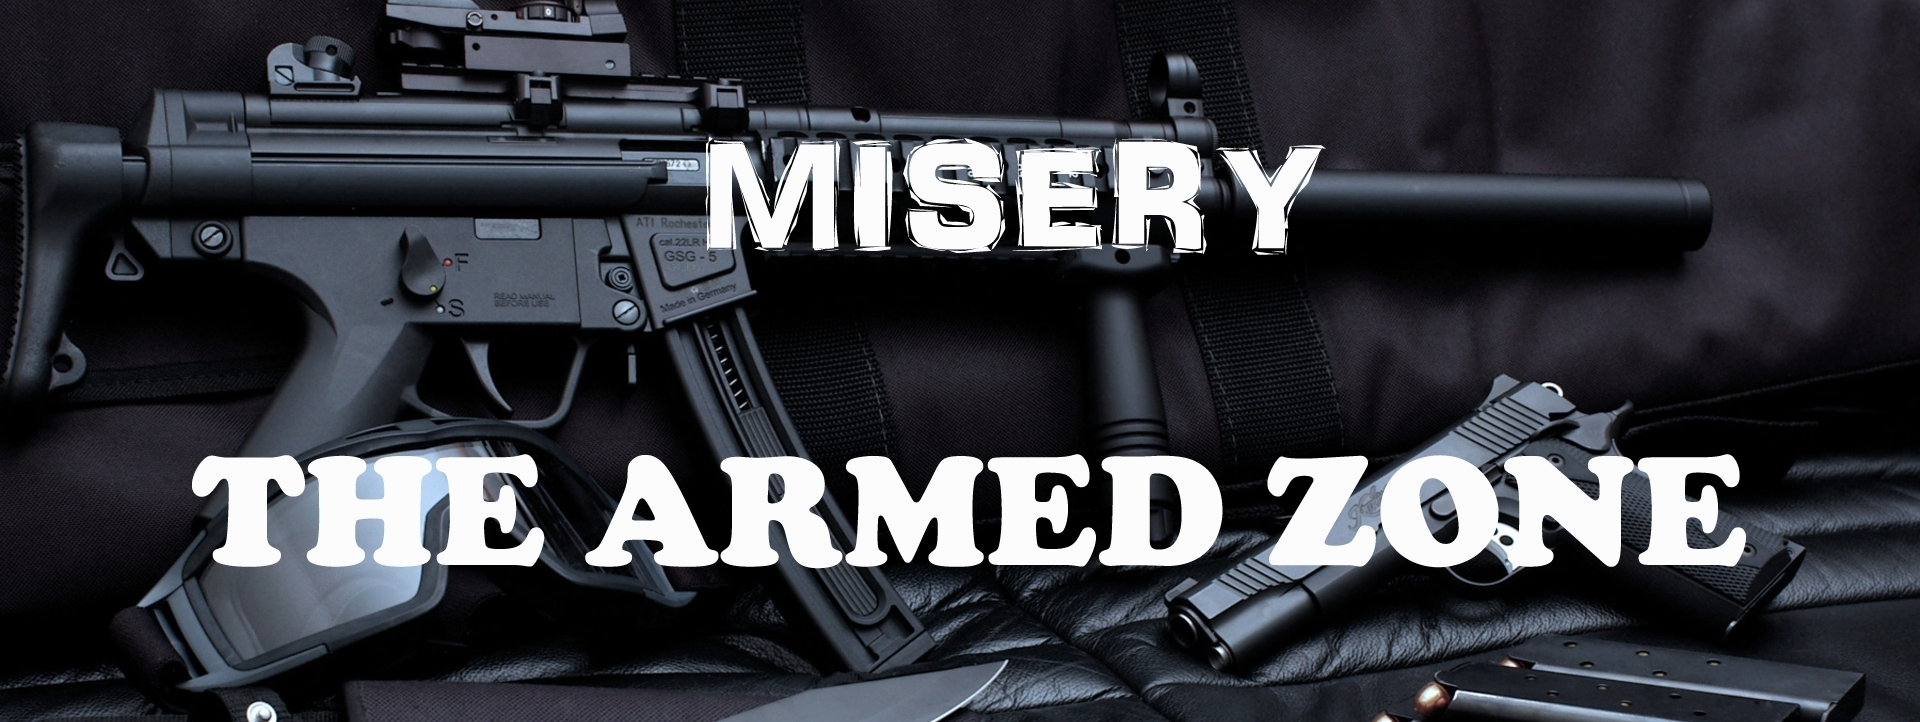 Misery : The Armed zone